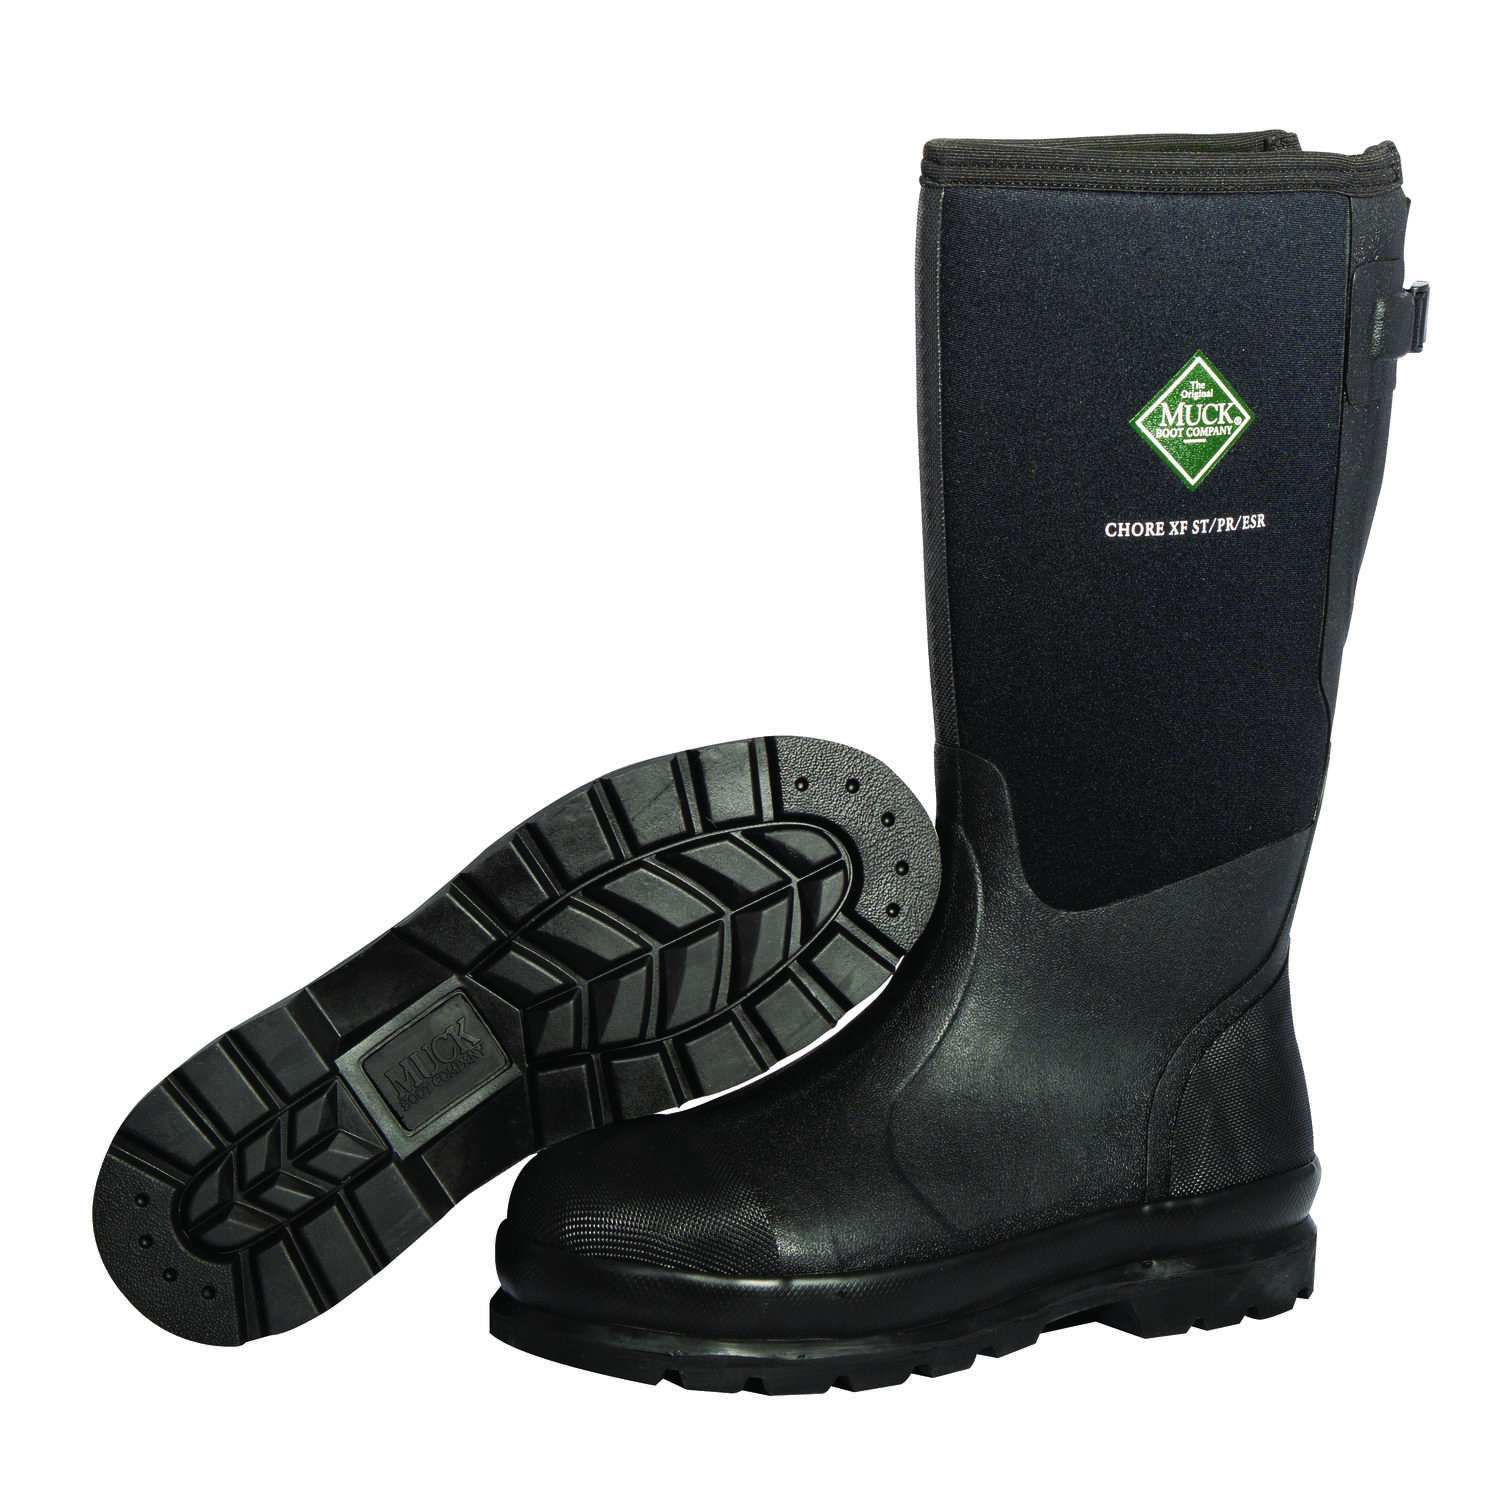 The Original Muck Boot Company Chore XF Men's Rubber/Steel Classic Boots Black 11 US Waterpr